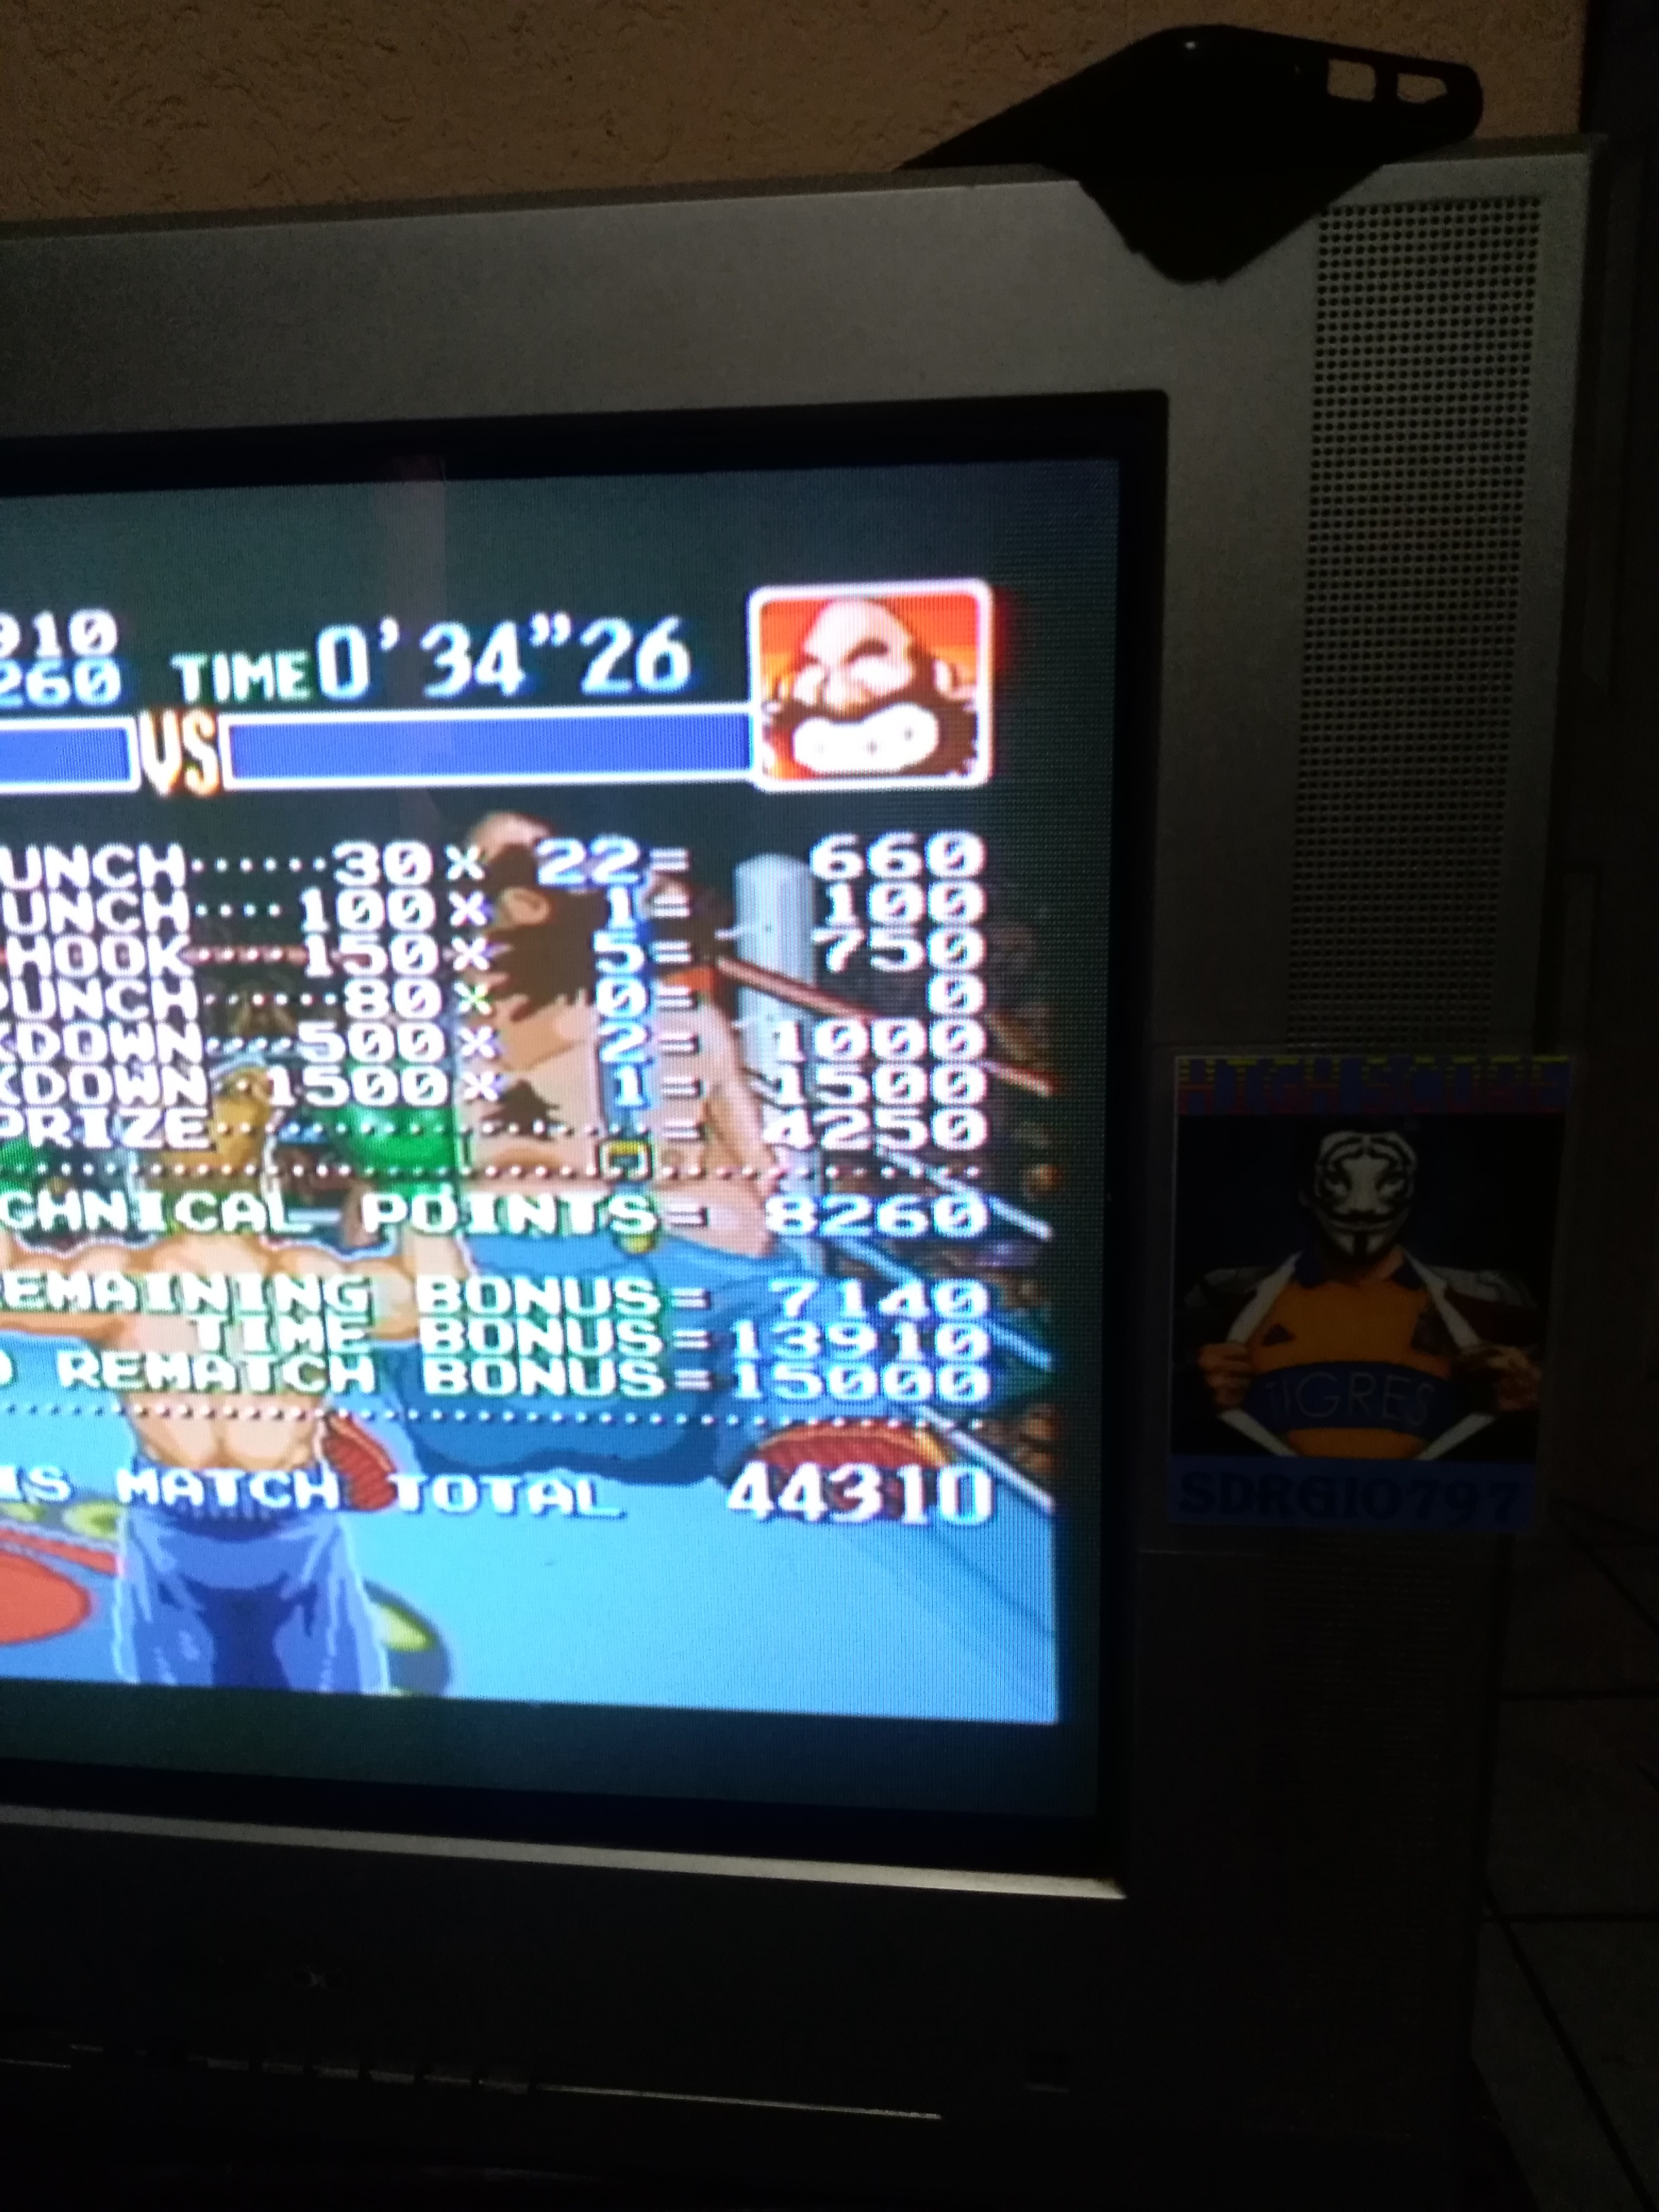 Sdrgio797: Super Punch-Out!! [Bear Hugger] (SNES/Super Famicom Emulated) 44,310 points on 2020-07-26 20:21:53